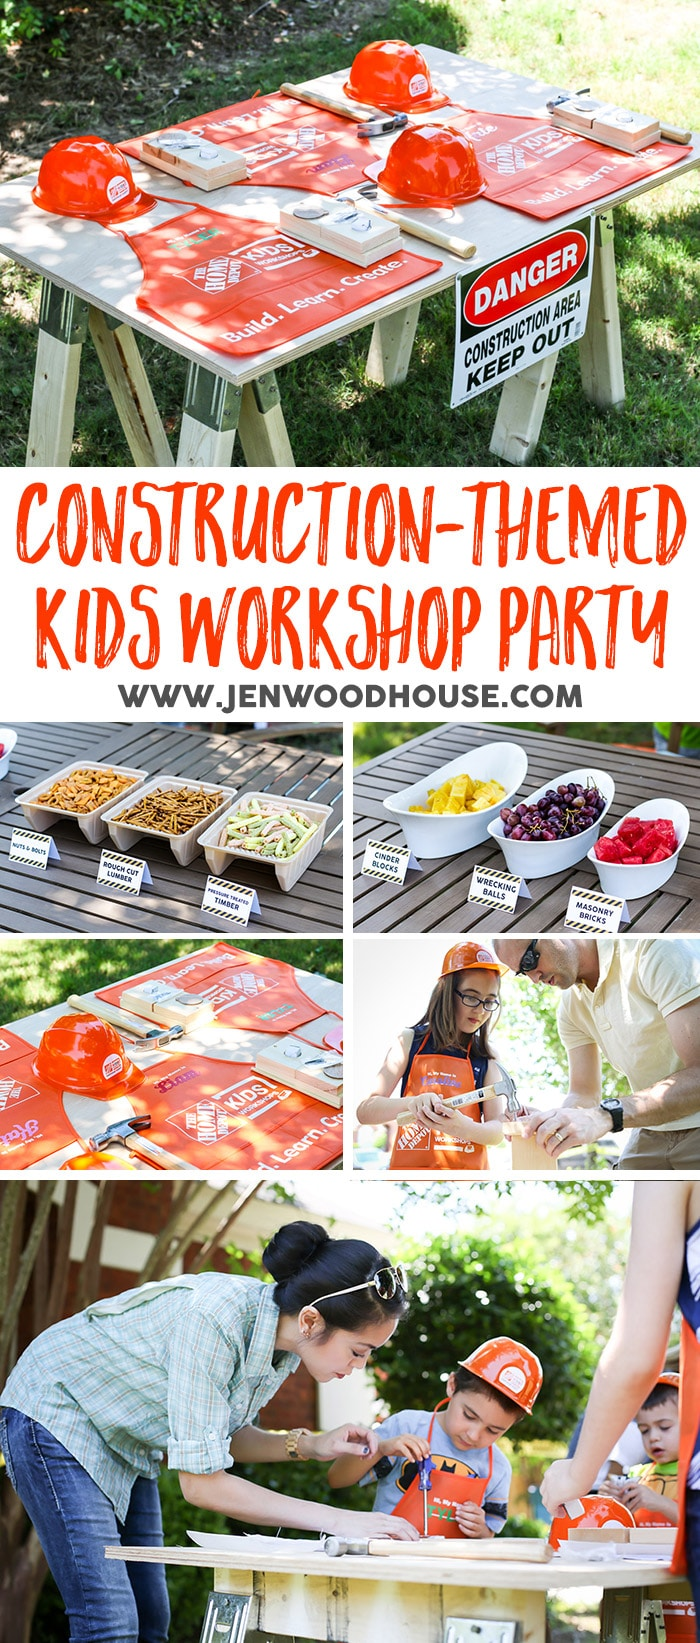 Host a fun construction-themed kids workshop party where the kids can build things! Workshop kits sold at HomeDepot.com